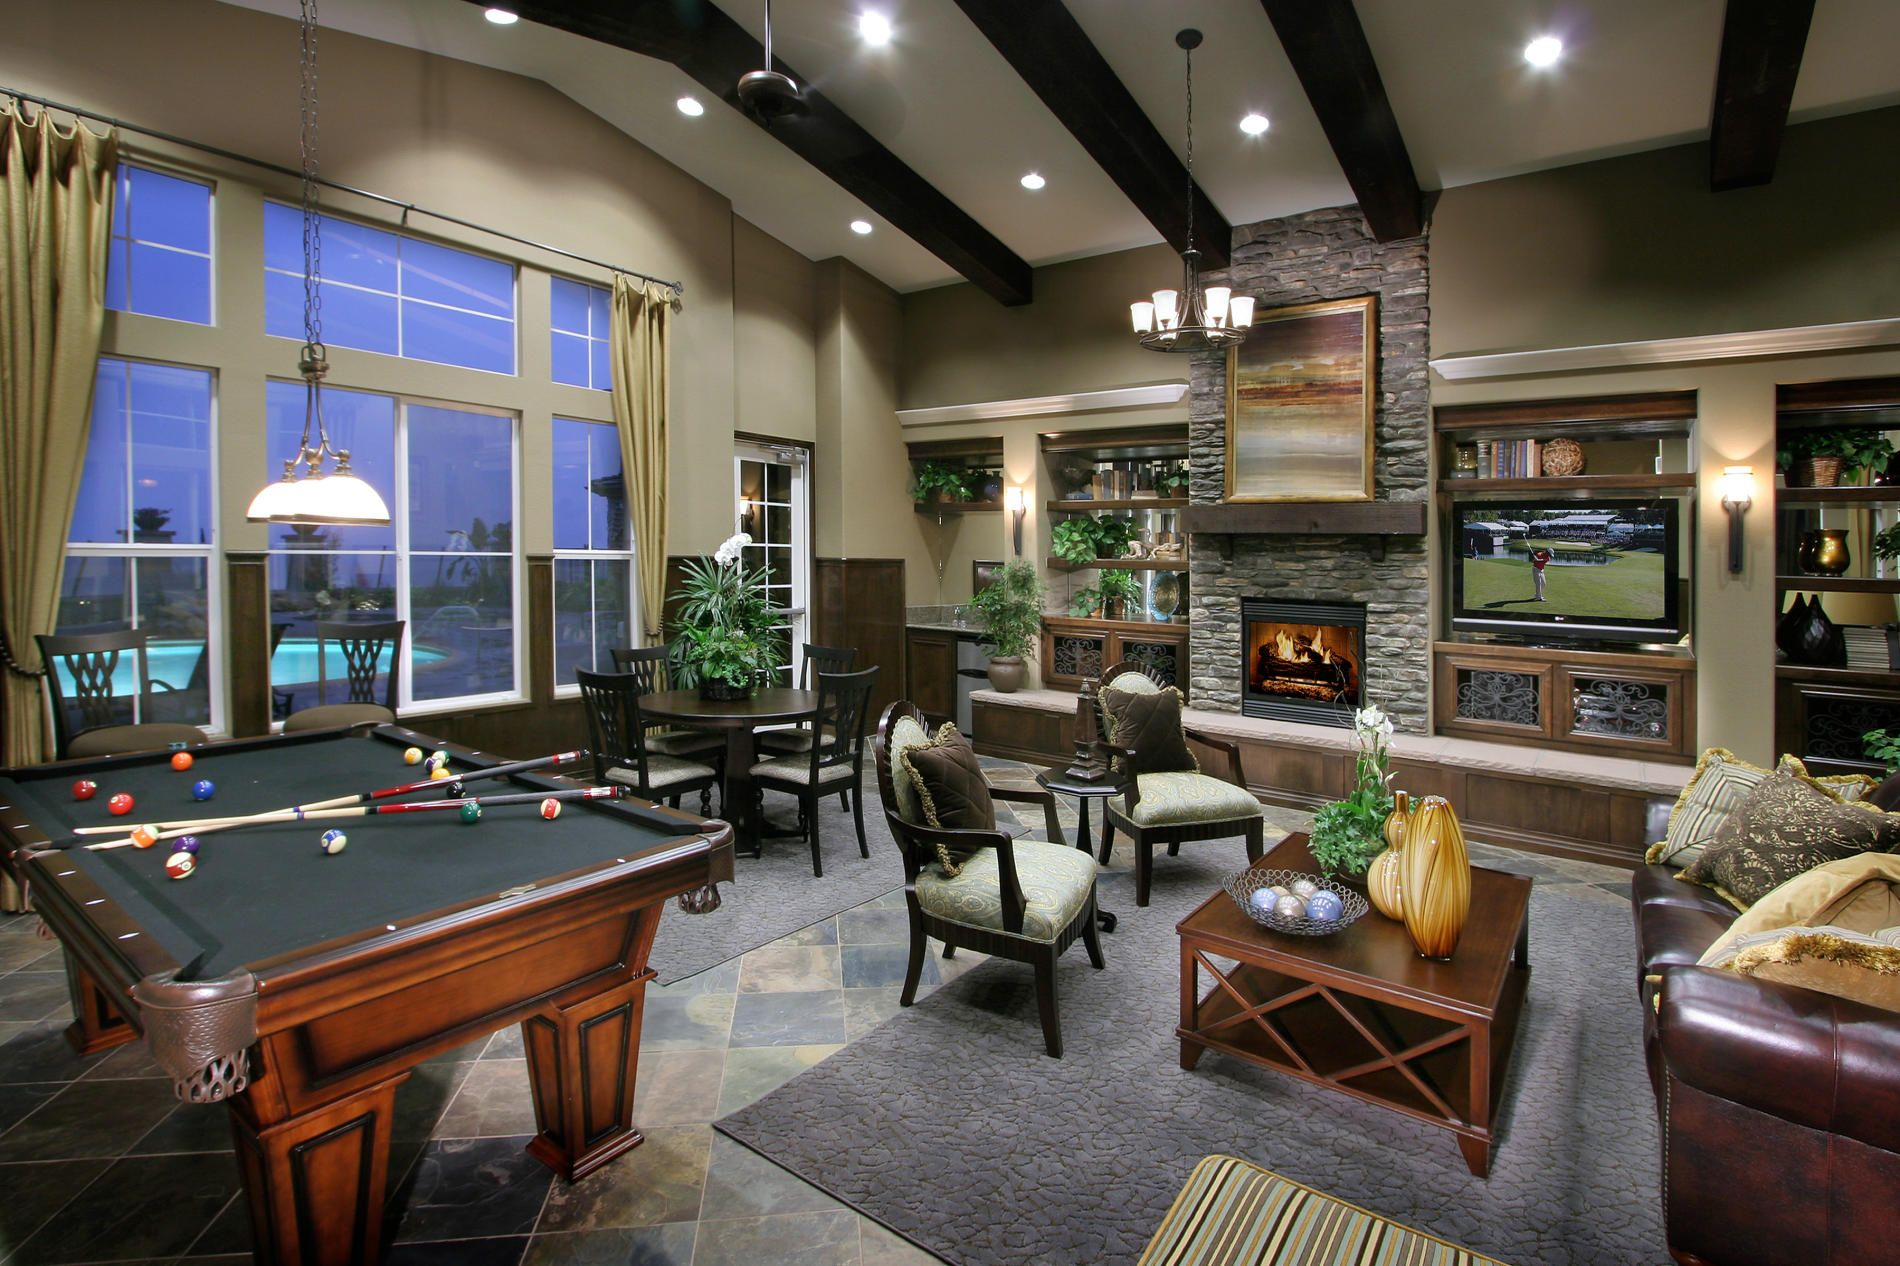 Inspiring recreation room ideas along with decor design for Kids rec room ideas